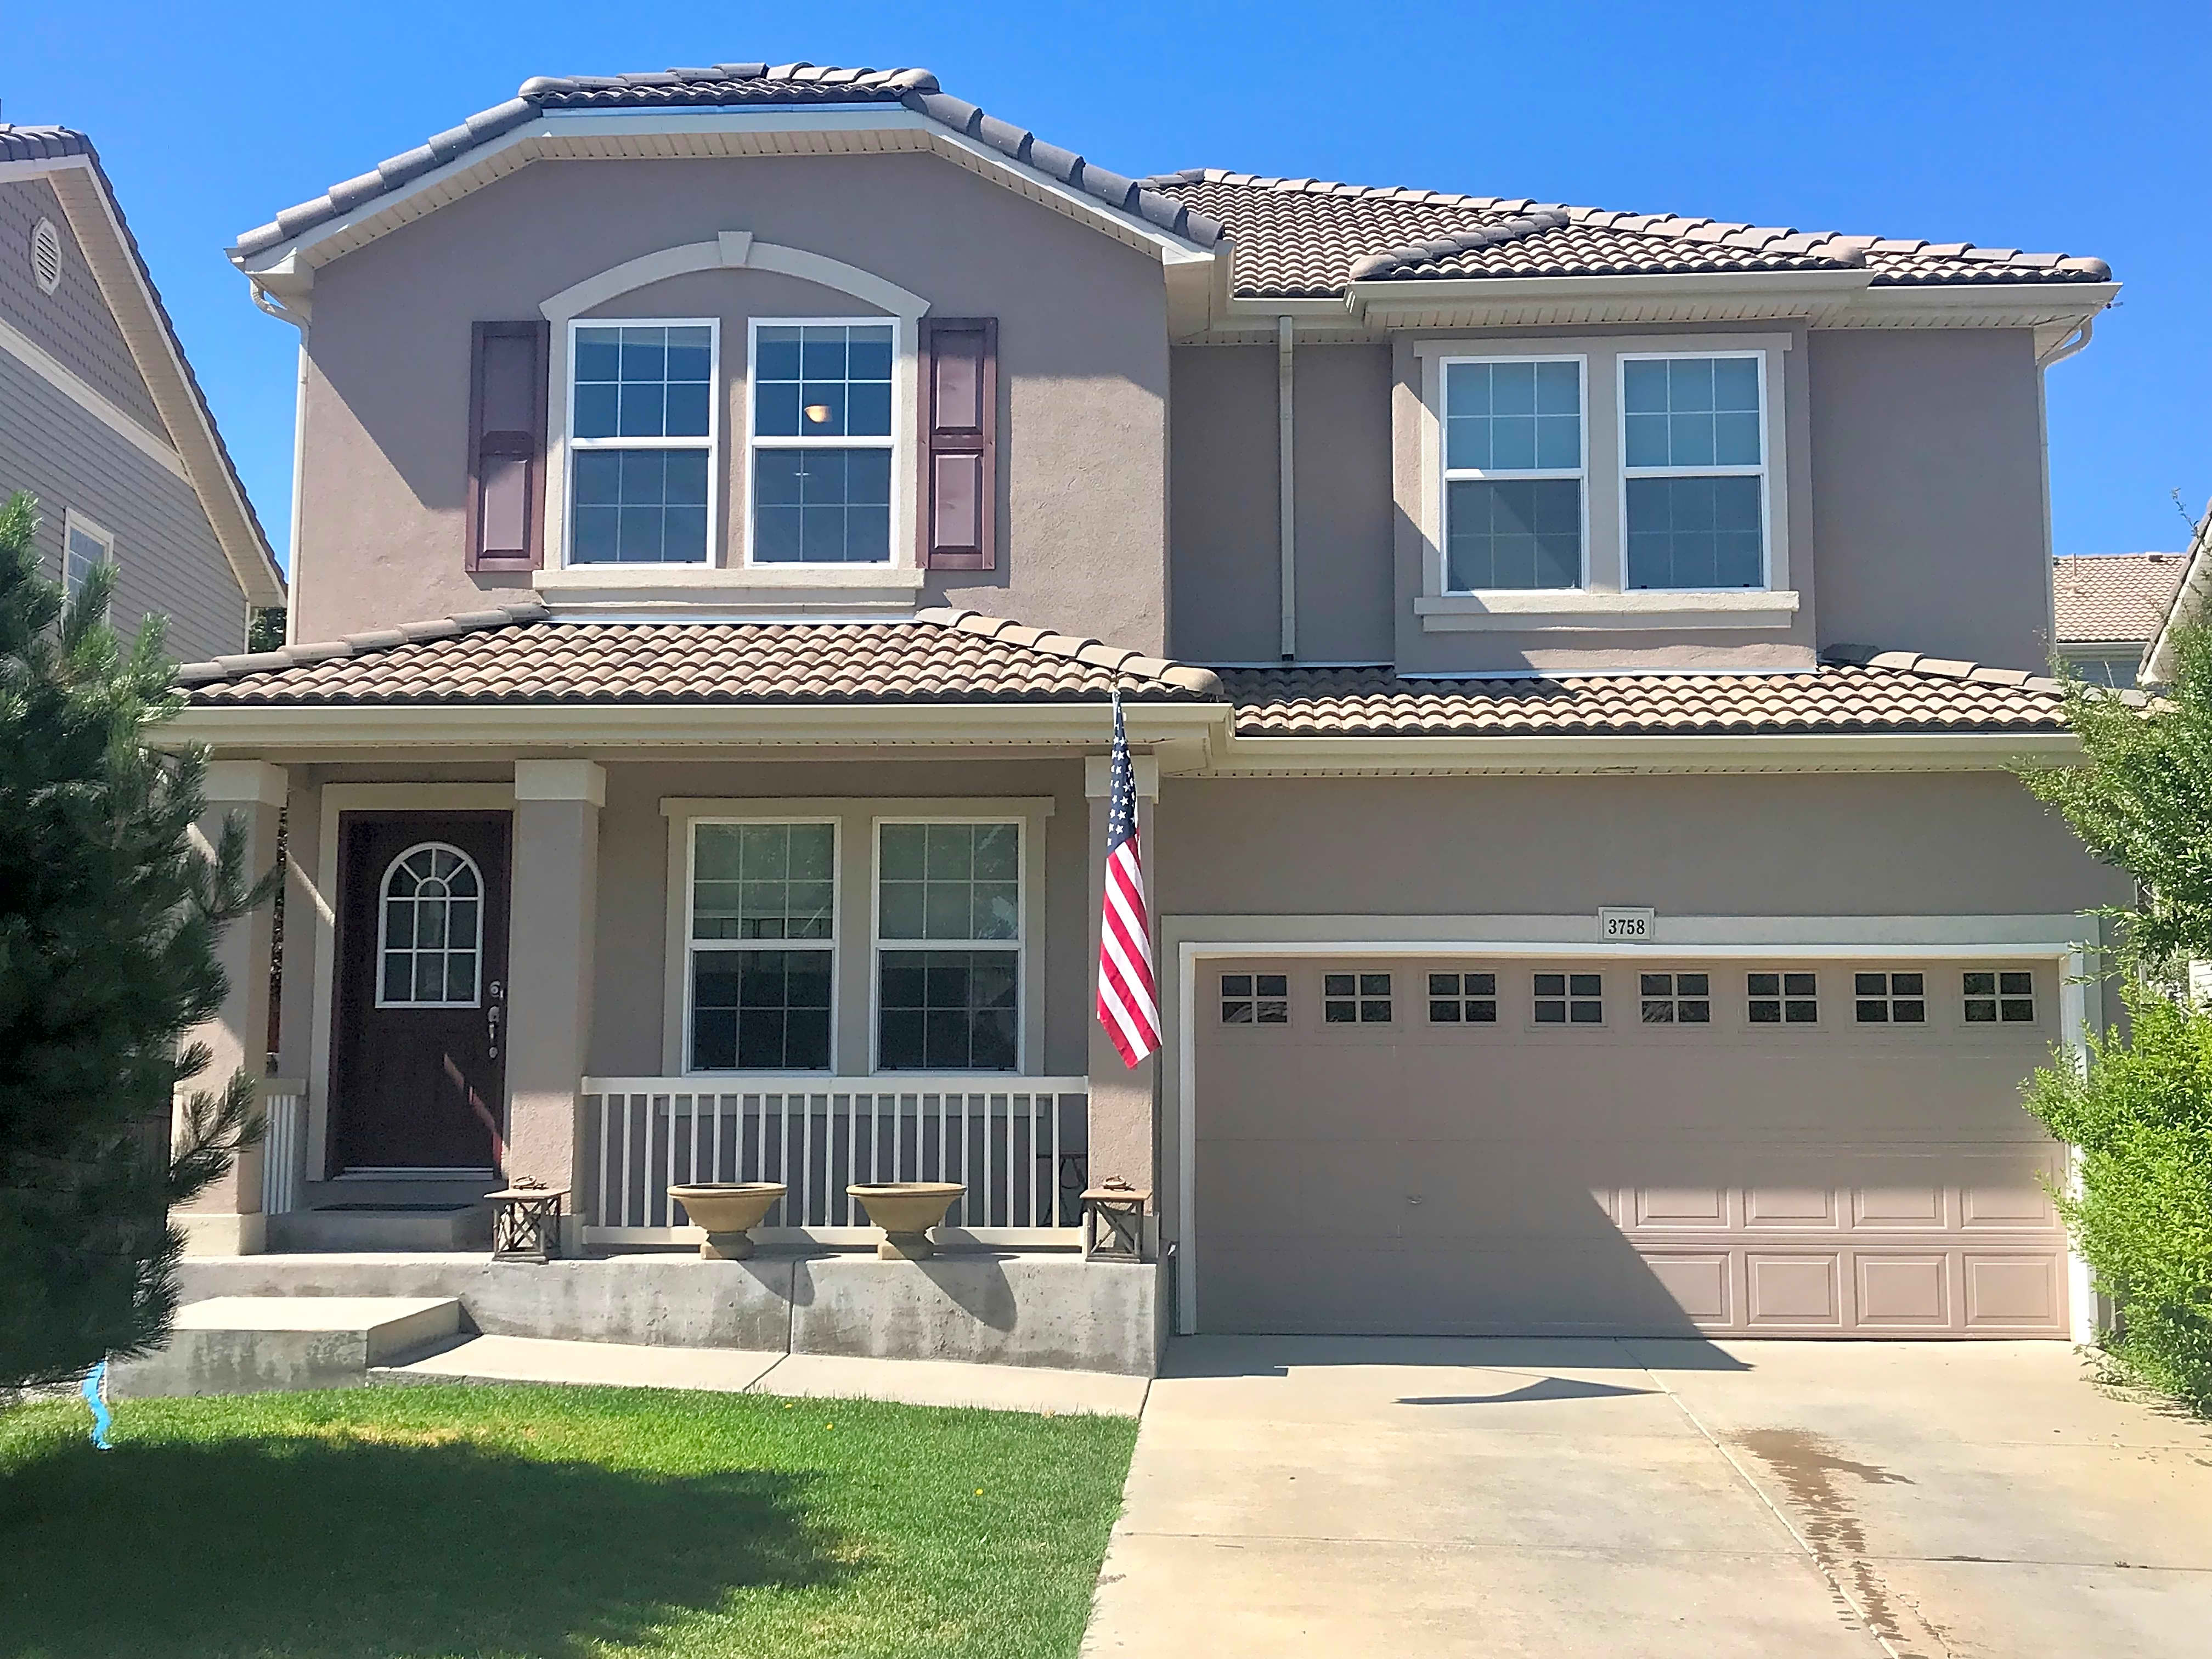 Beautiful large stucco home in desirable area